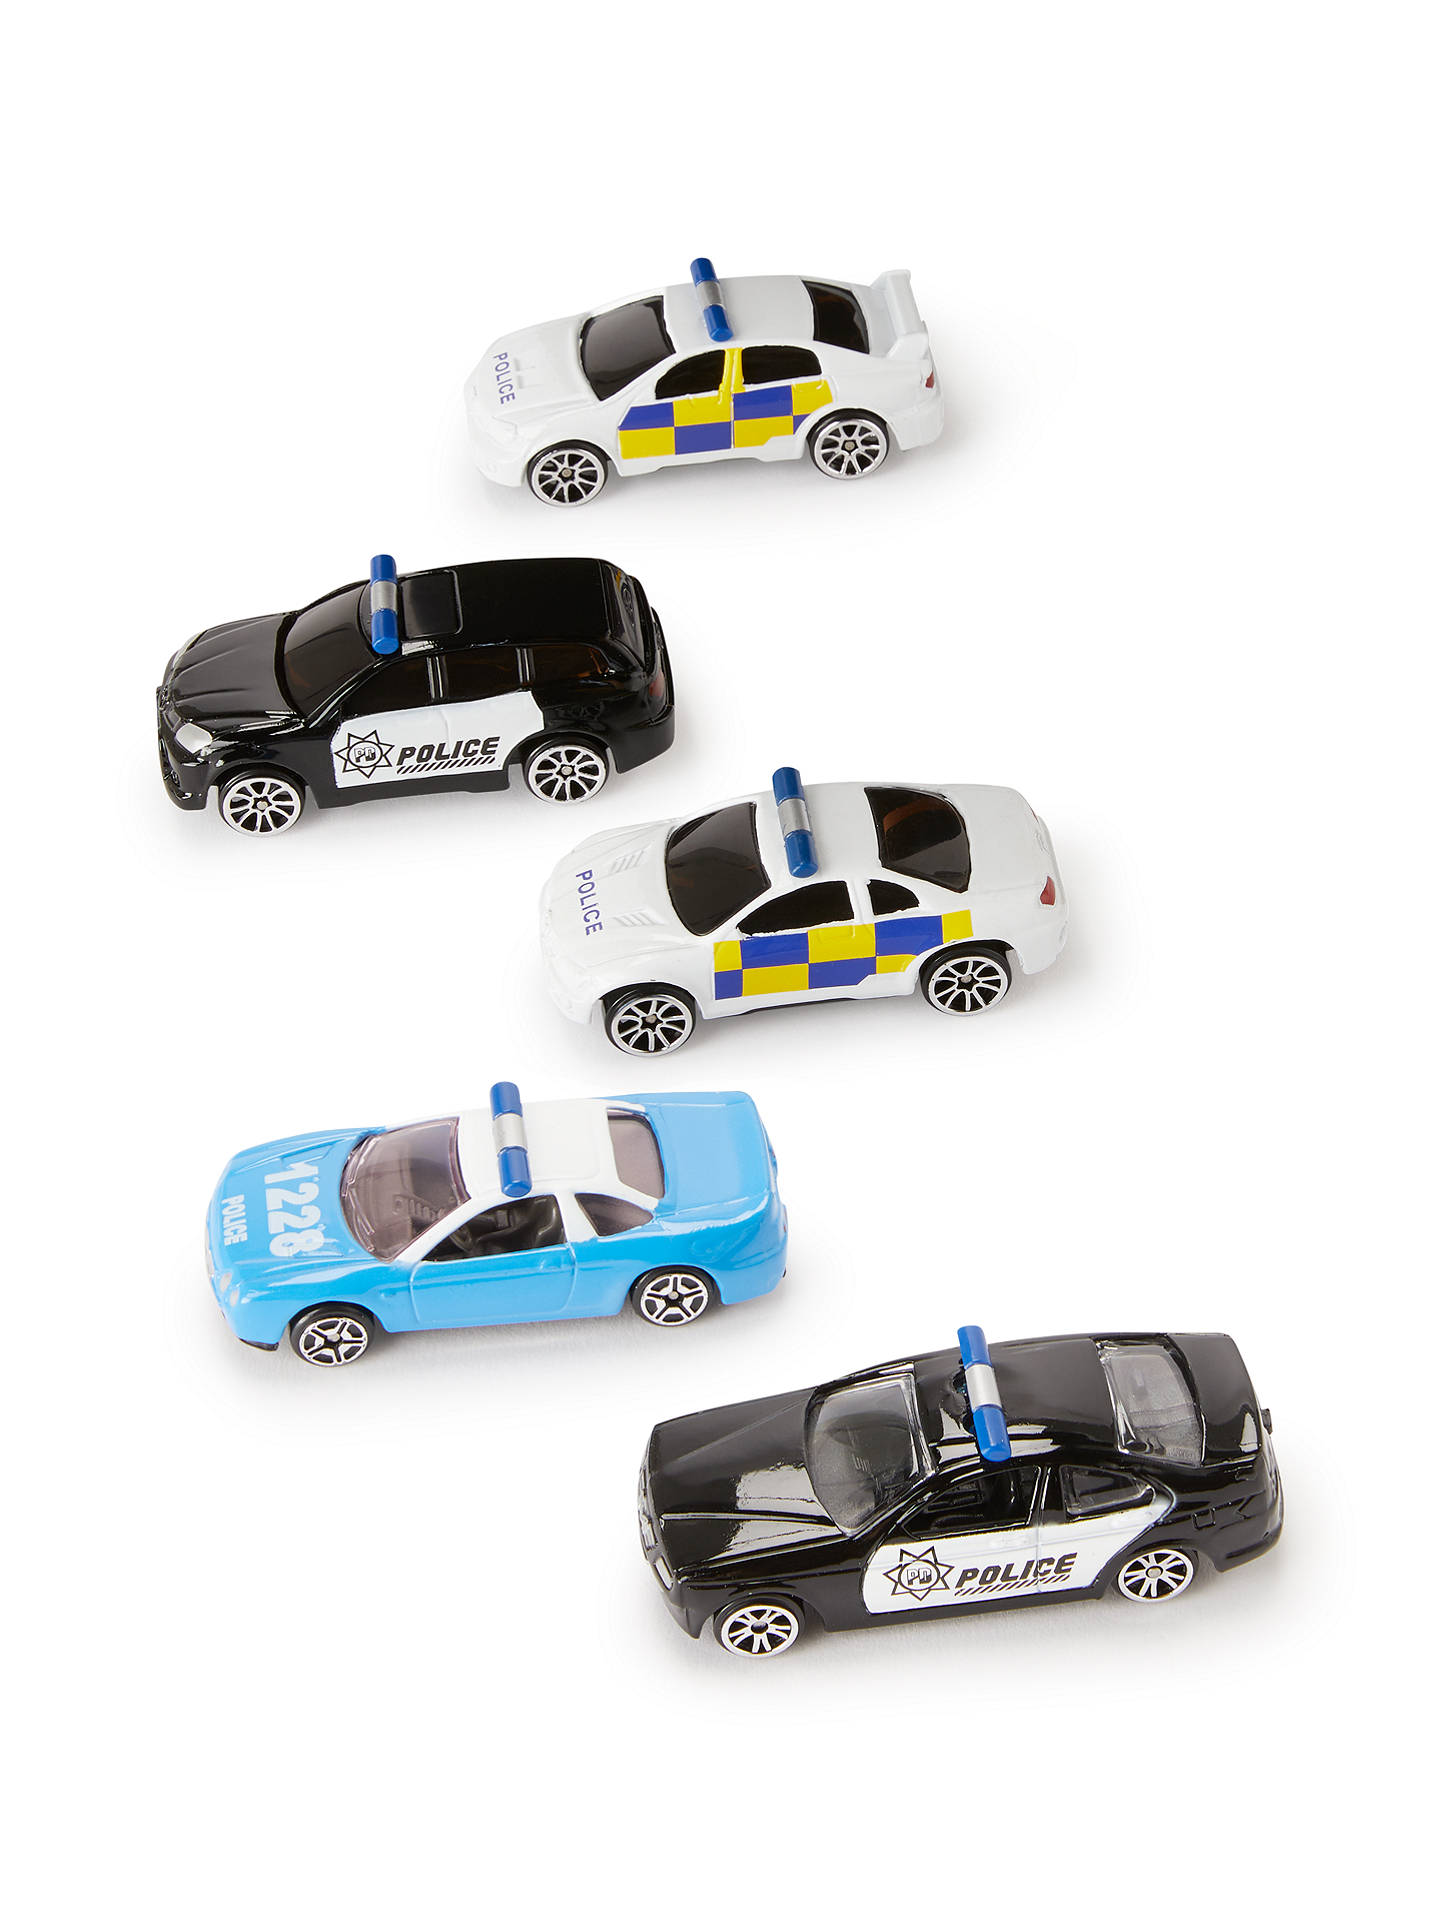 BuyJohn Lewis & Partners Police Vehicles, Pack of 5 Online at johnlewis.com